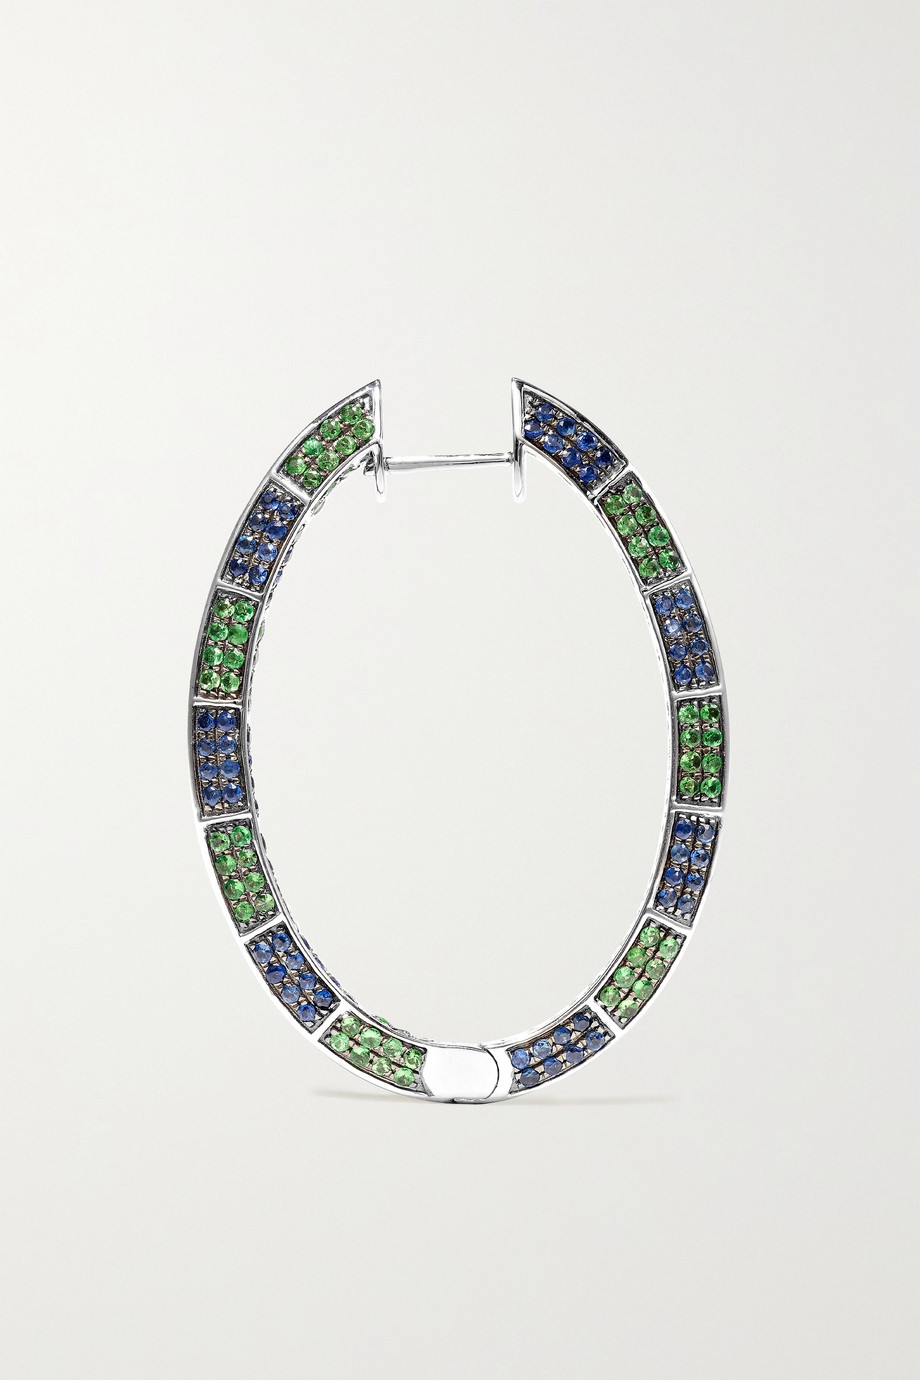 OFIRA 18-karat white gold, sapphire and tsavorite earrings